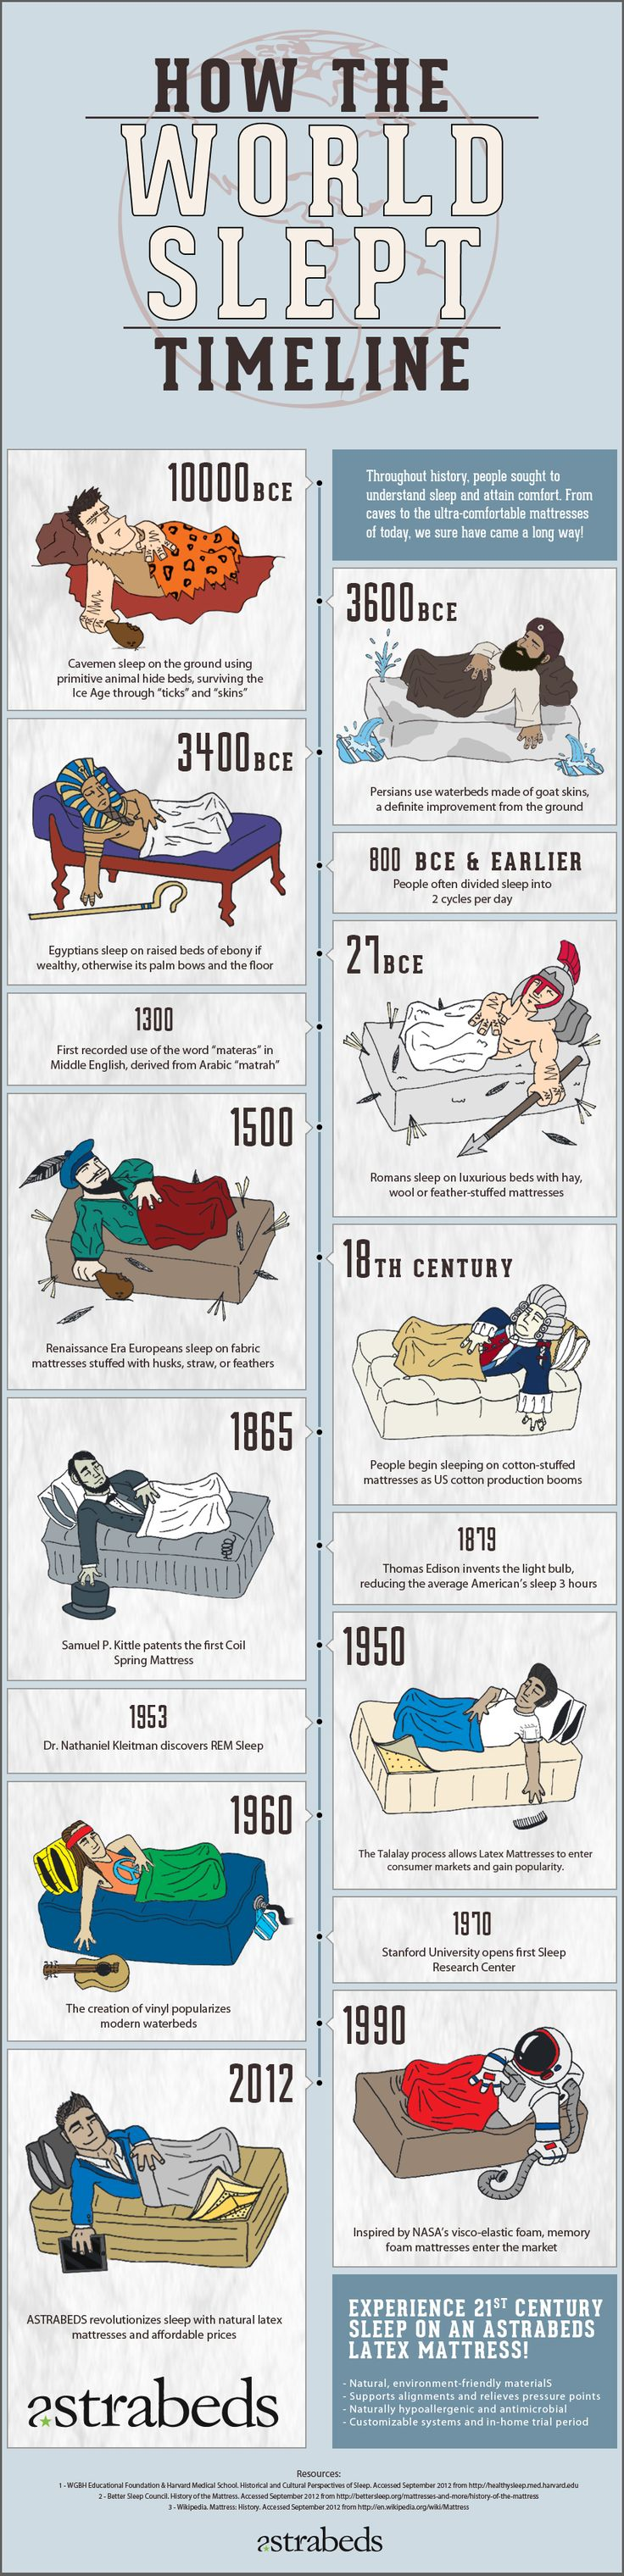 Best 25 history of the world ideas on pinterest history of astrabeds presents how the world slept timeline the history of sleep very interesting gamestrikefo Image collections